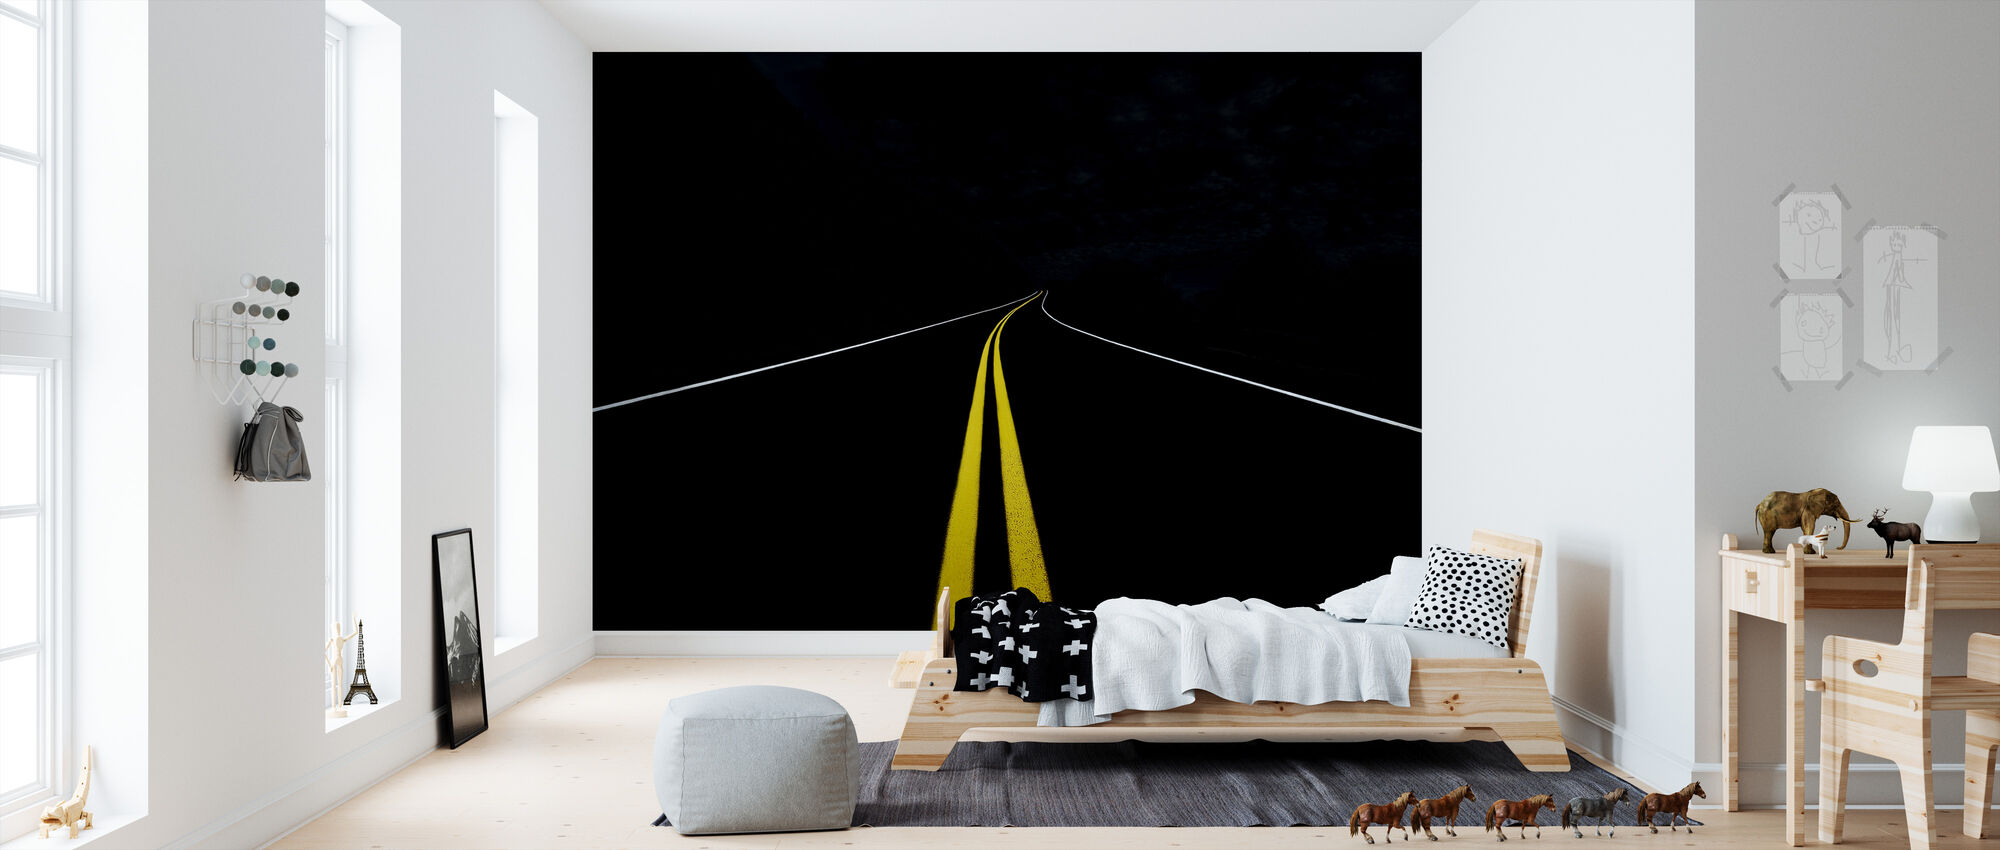 The Road to Nowhere - Wallpaper - Kids Room